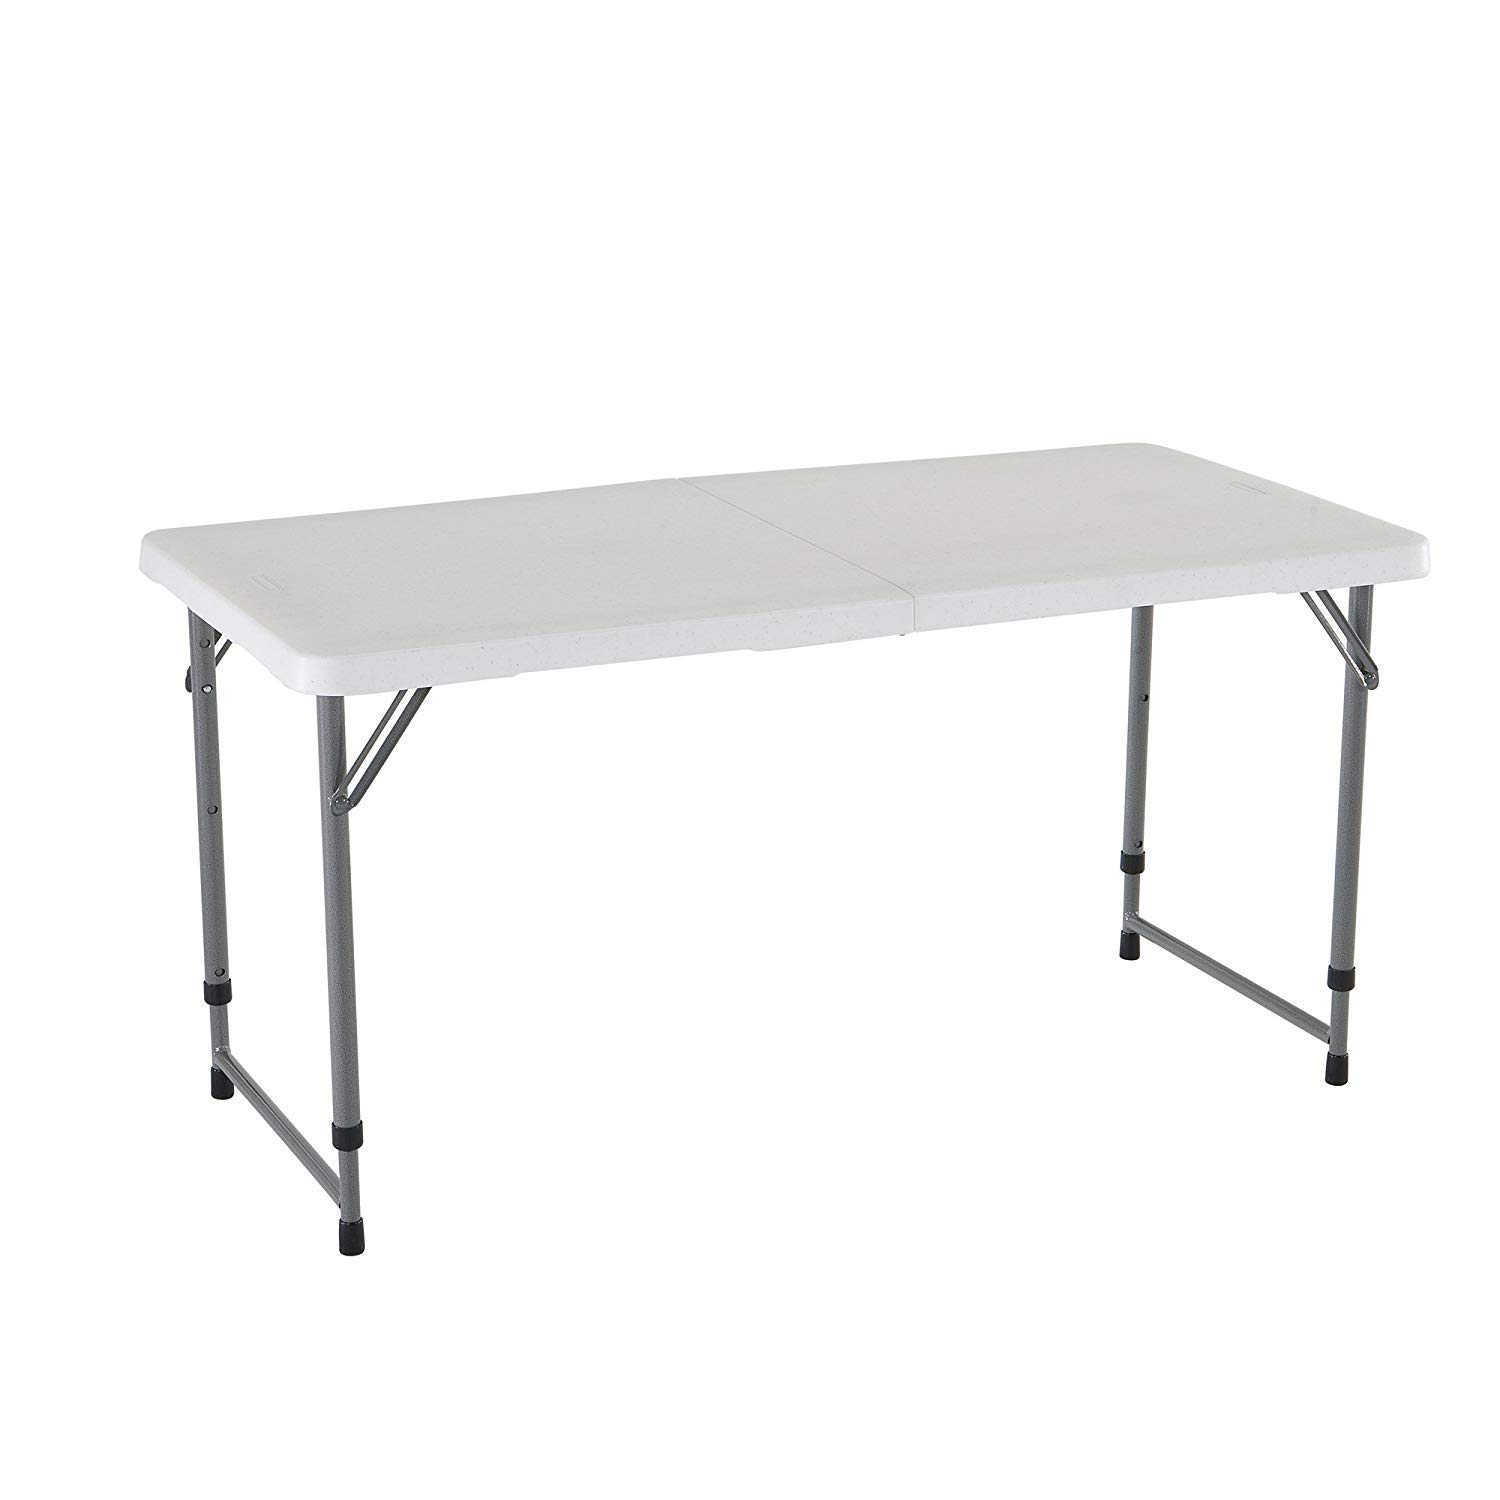 Lifetime 4428 Height Adjustable Craft, Camping and Utility Folding Table, 4 ft White, 3 Pack